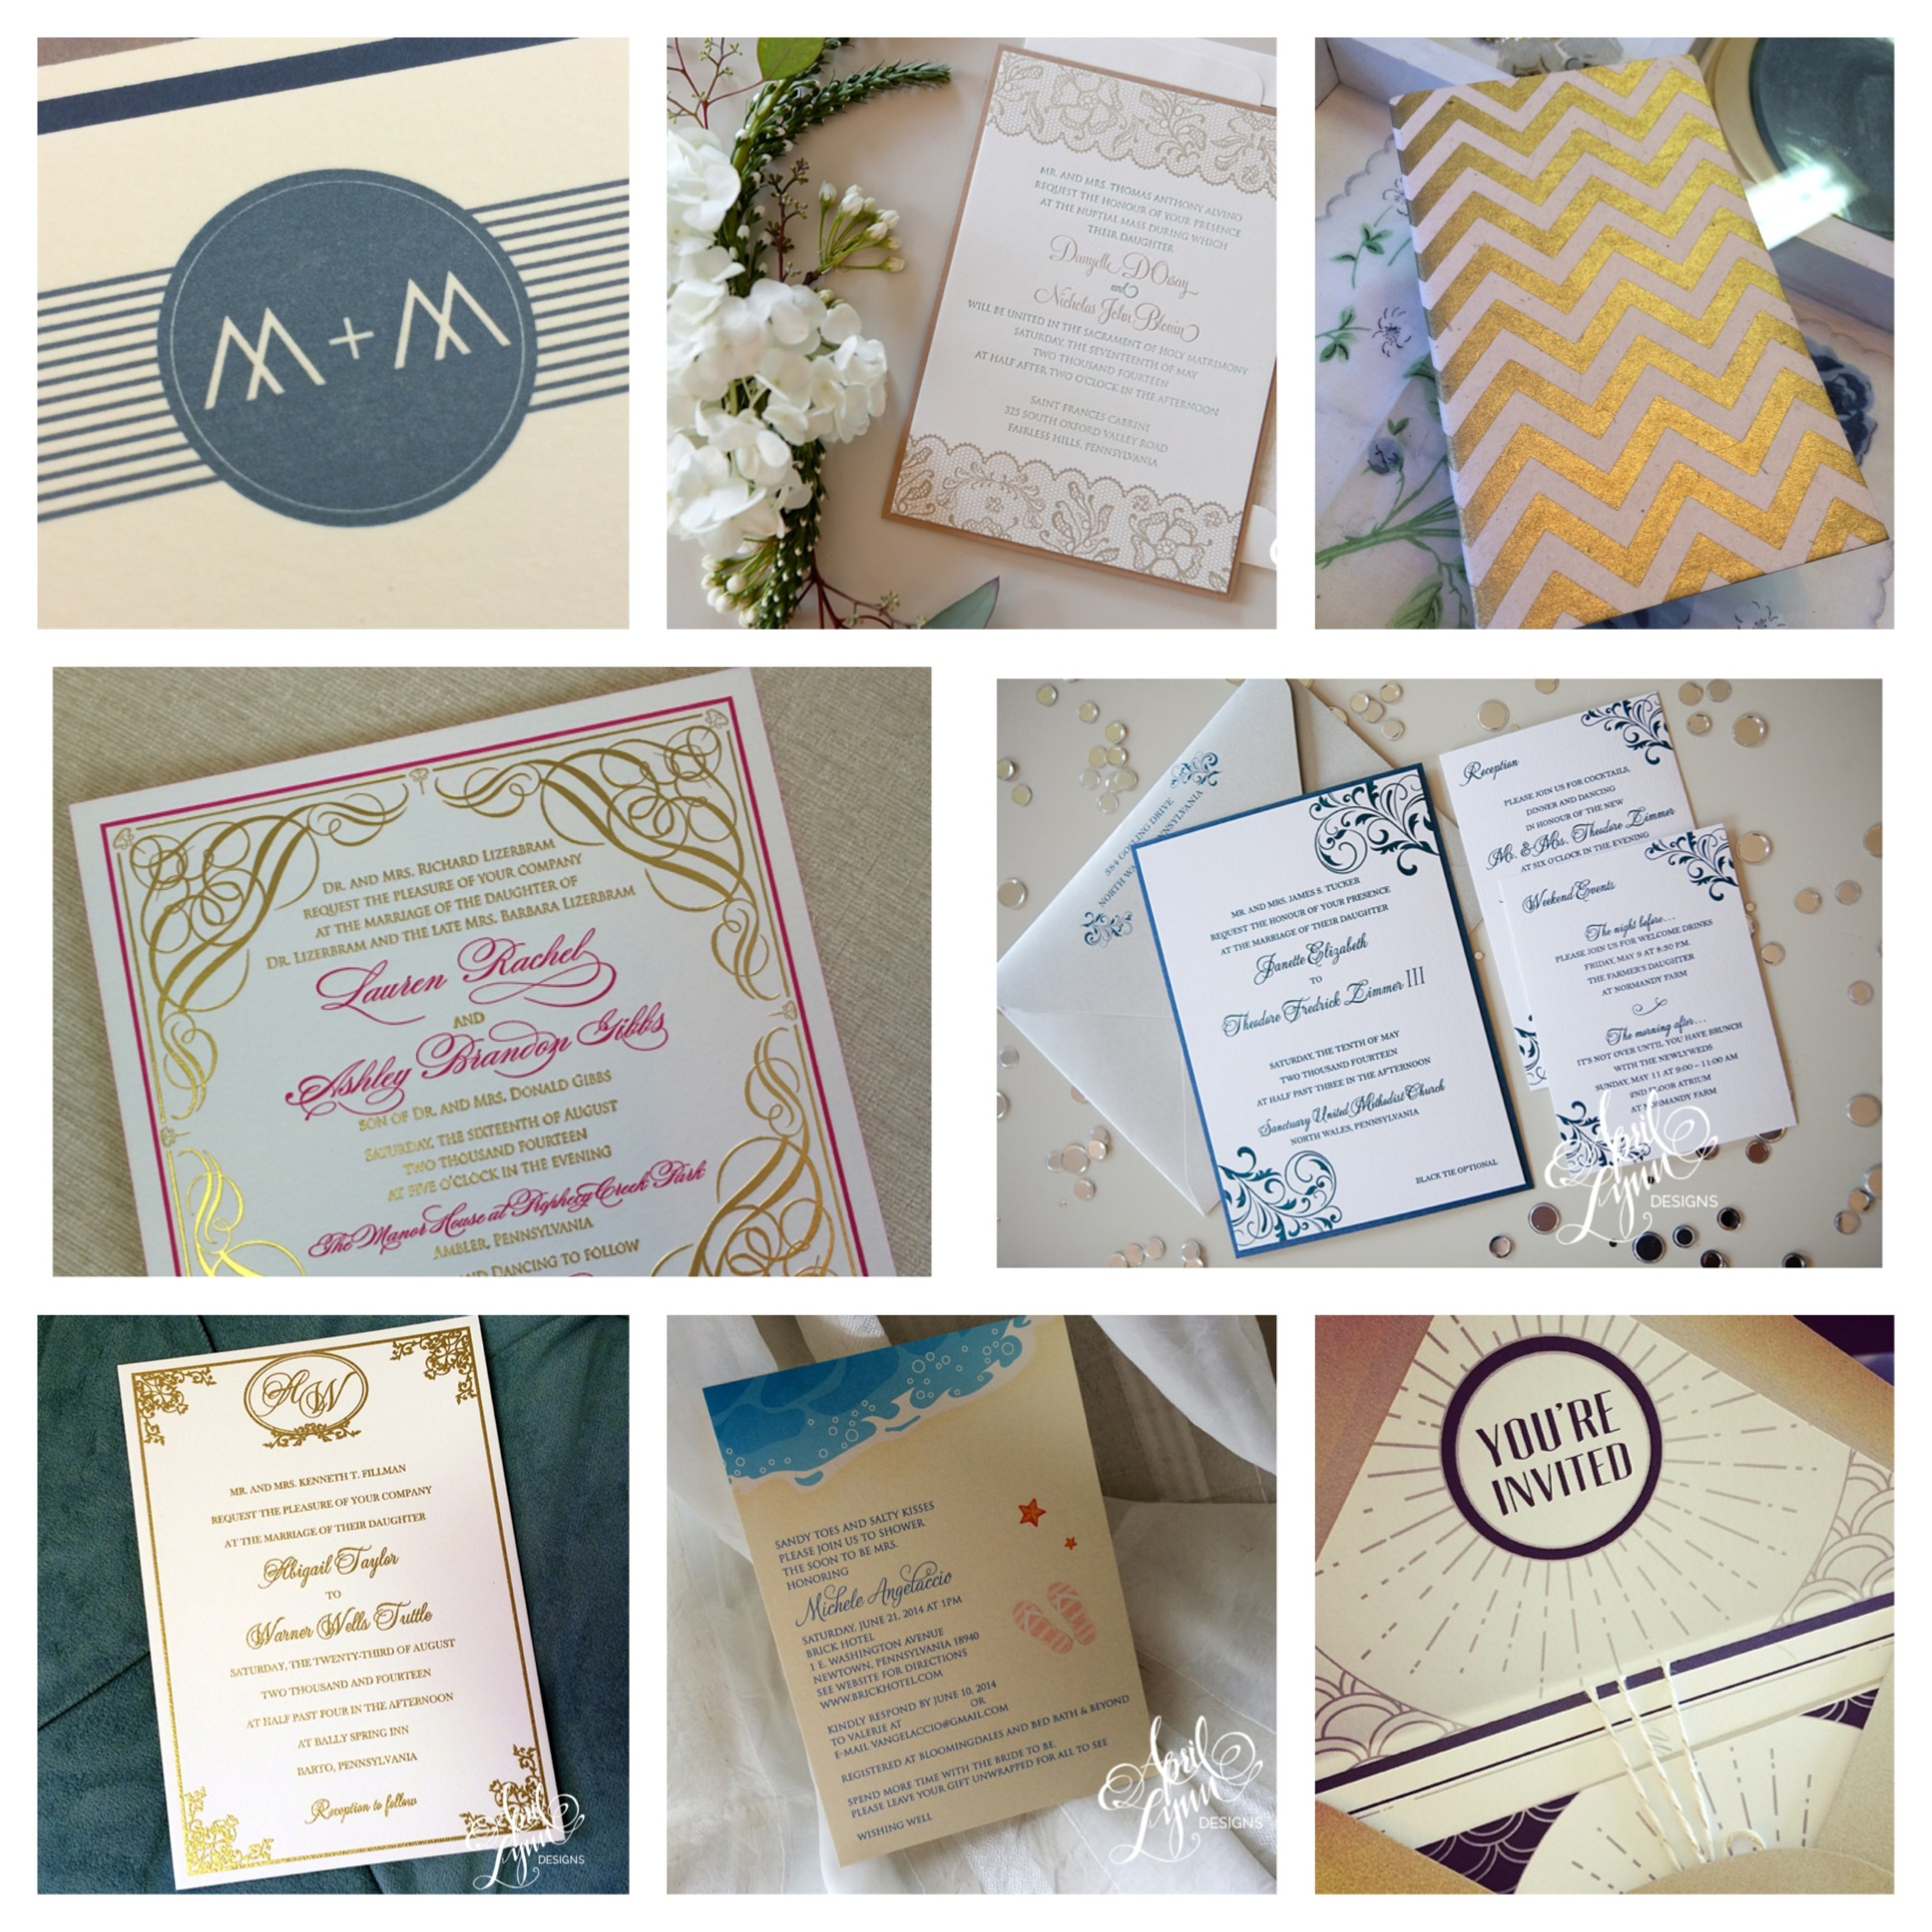 Philadelphia Custom Stationary Designer | InstaMonth August